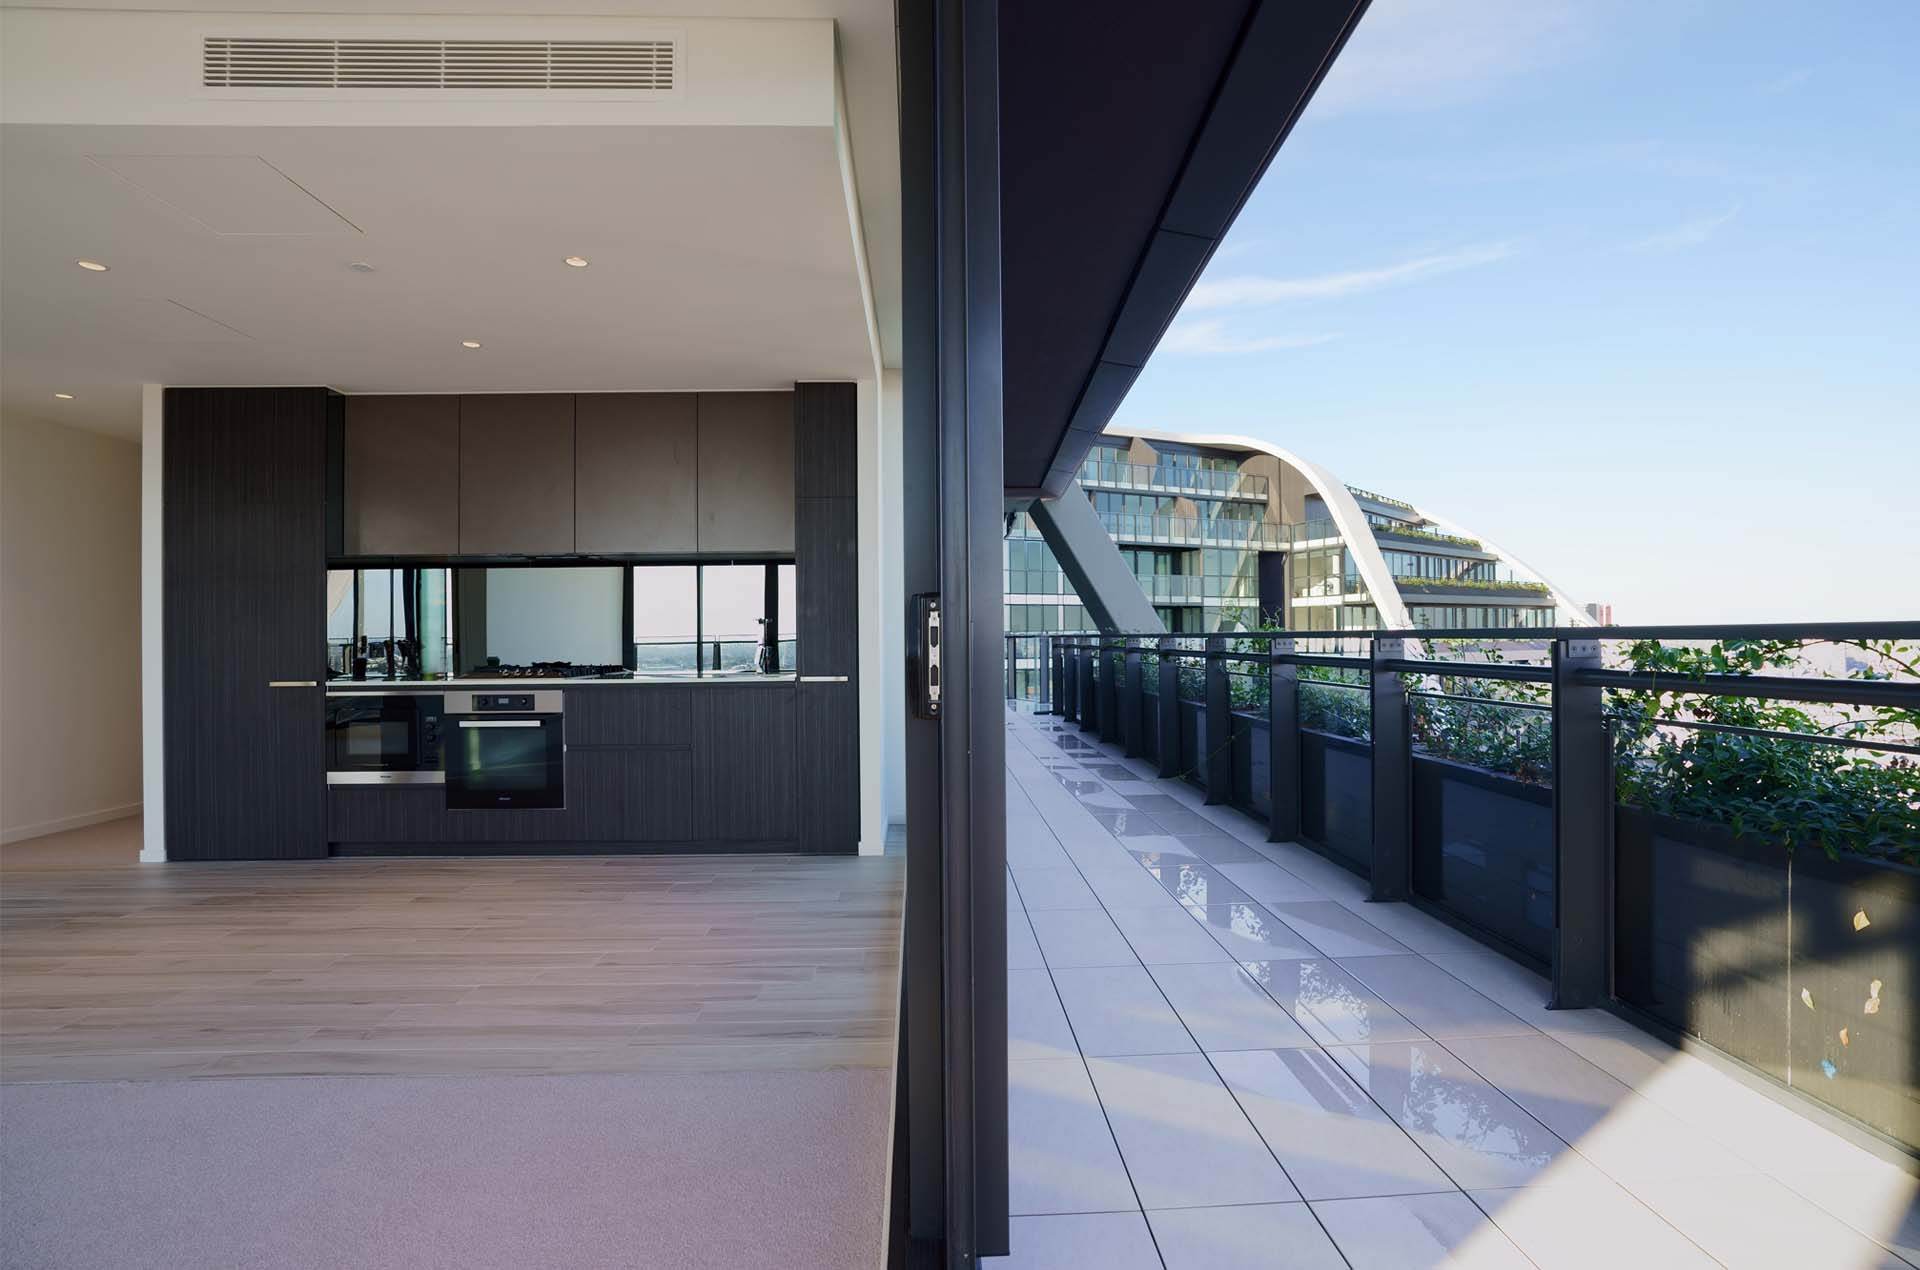 3 bedroom apartment for lease in zetland